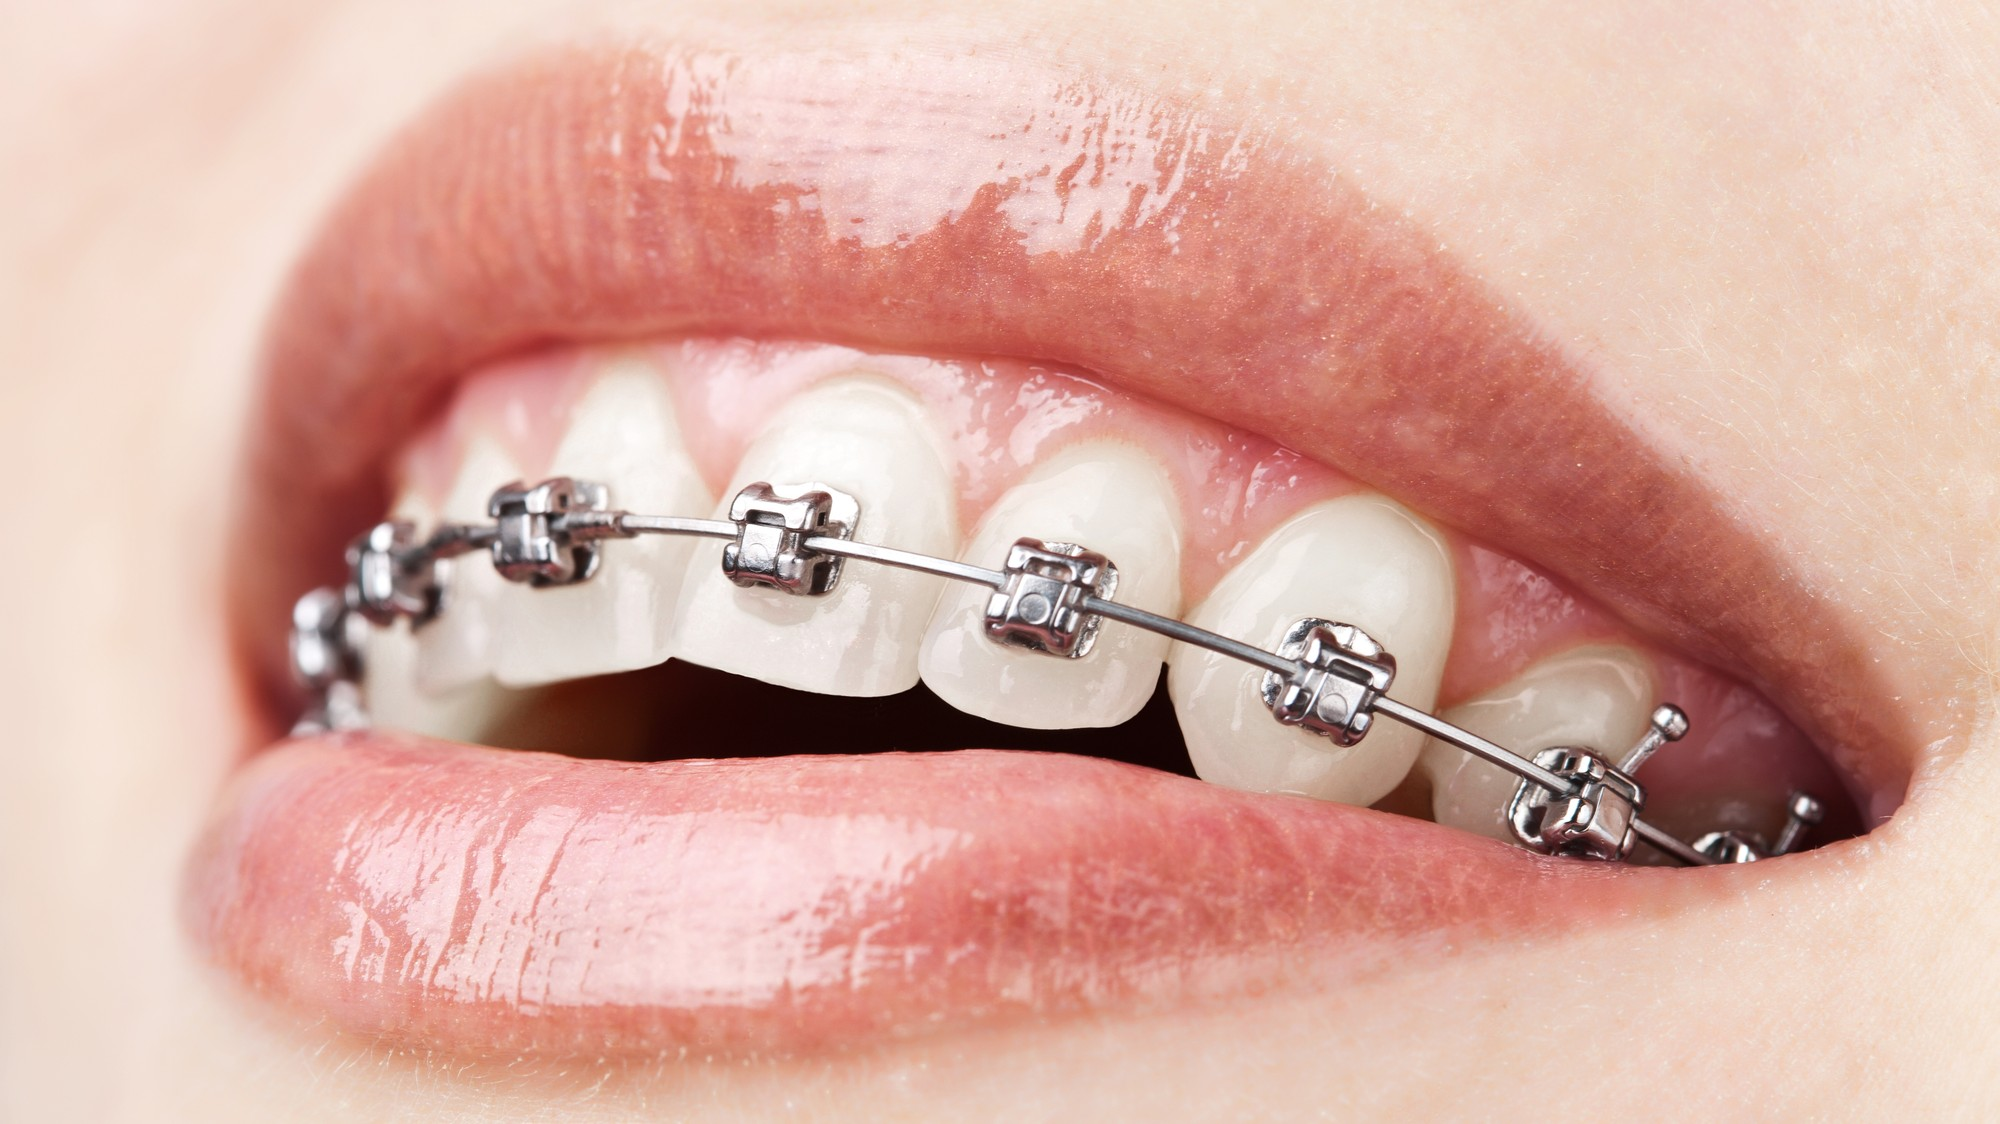 Braces Can Actually Be Bad For Your Teeth - VICE